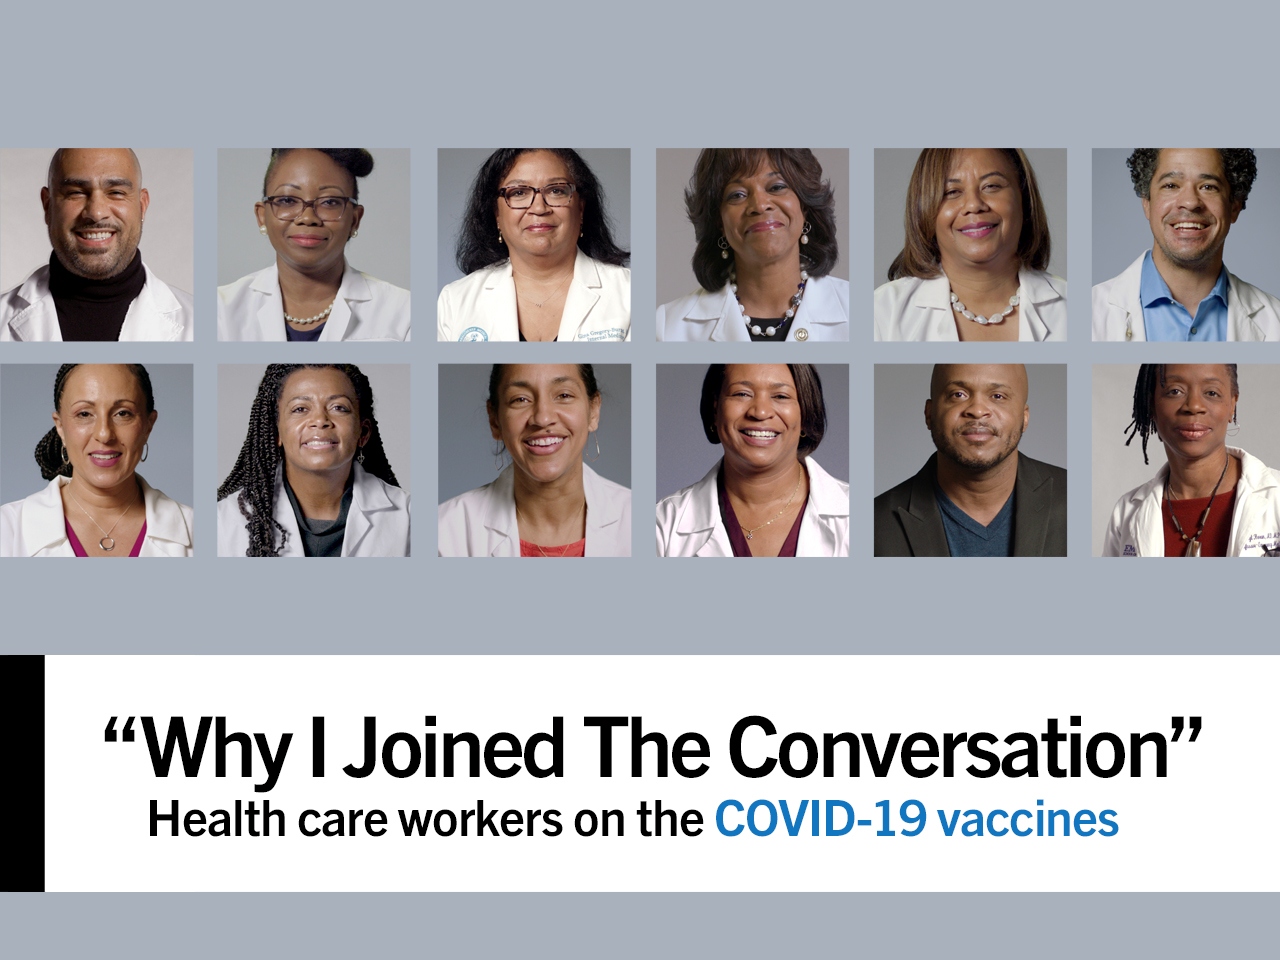 Why I Joined THE CONVERSATION - health care workers